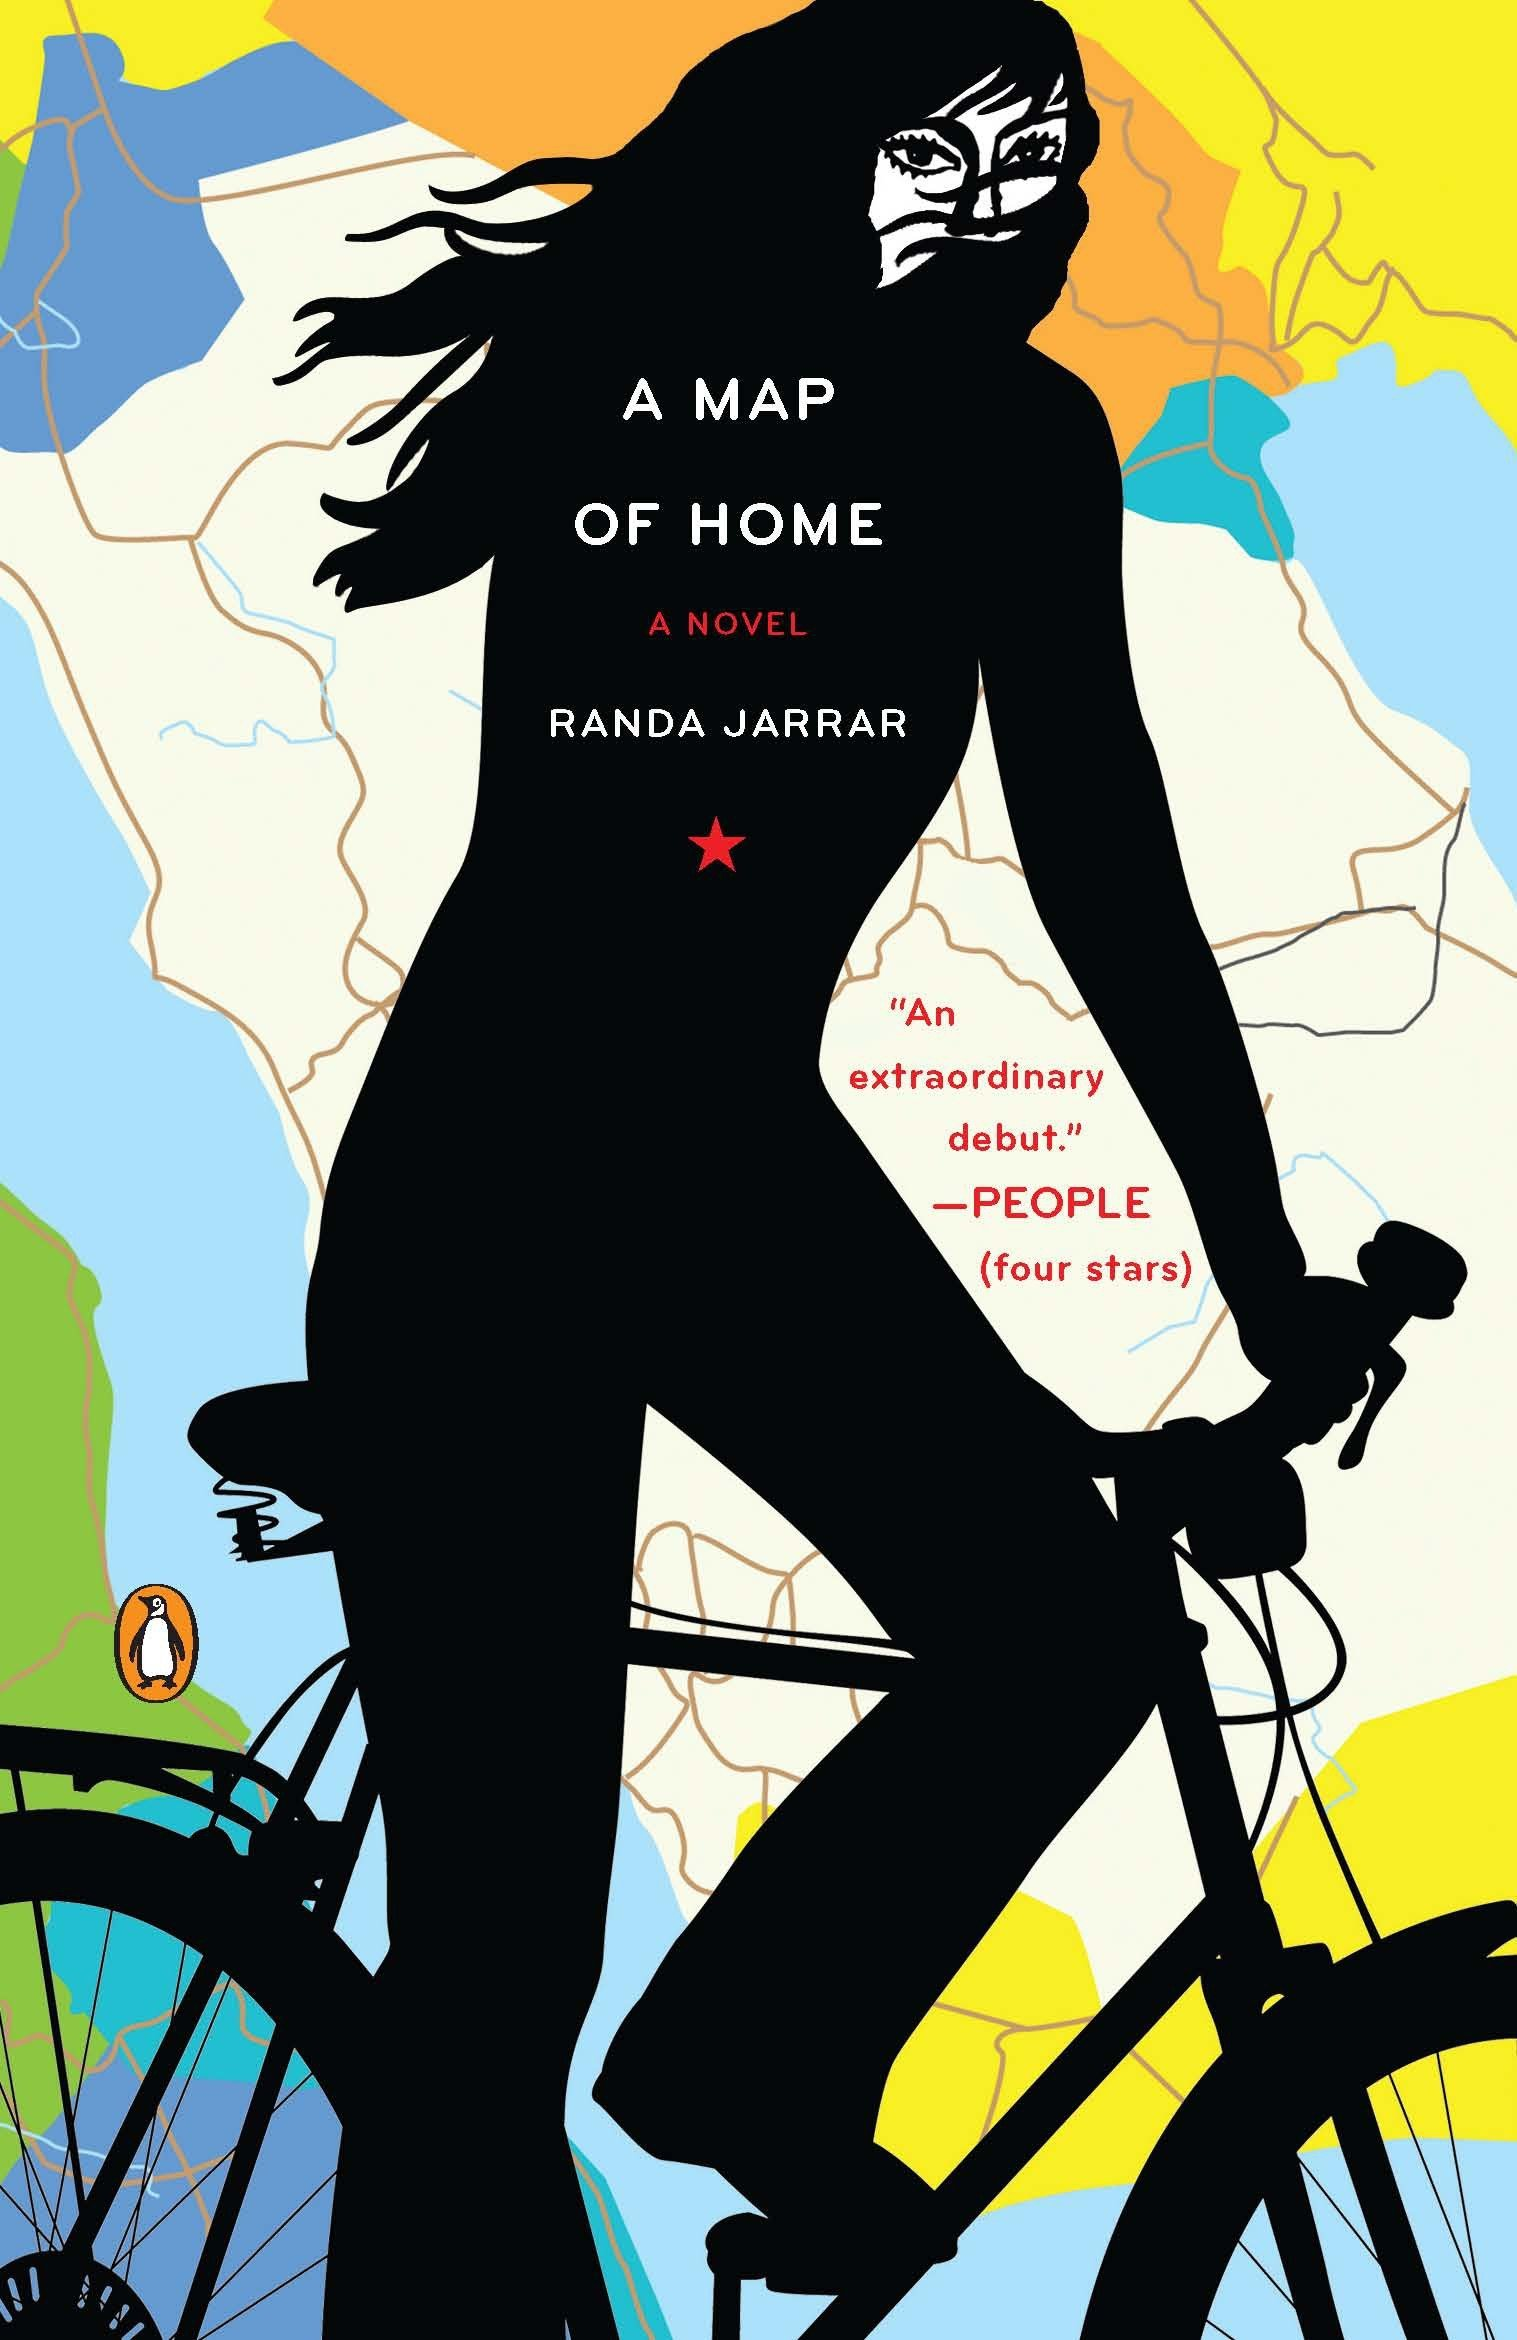 amazon com a map of home a novel 9780143116264 randa jarrar books rh amazon com a map of hotels in fivemiletown a map of home farm fishery crewe